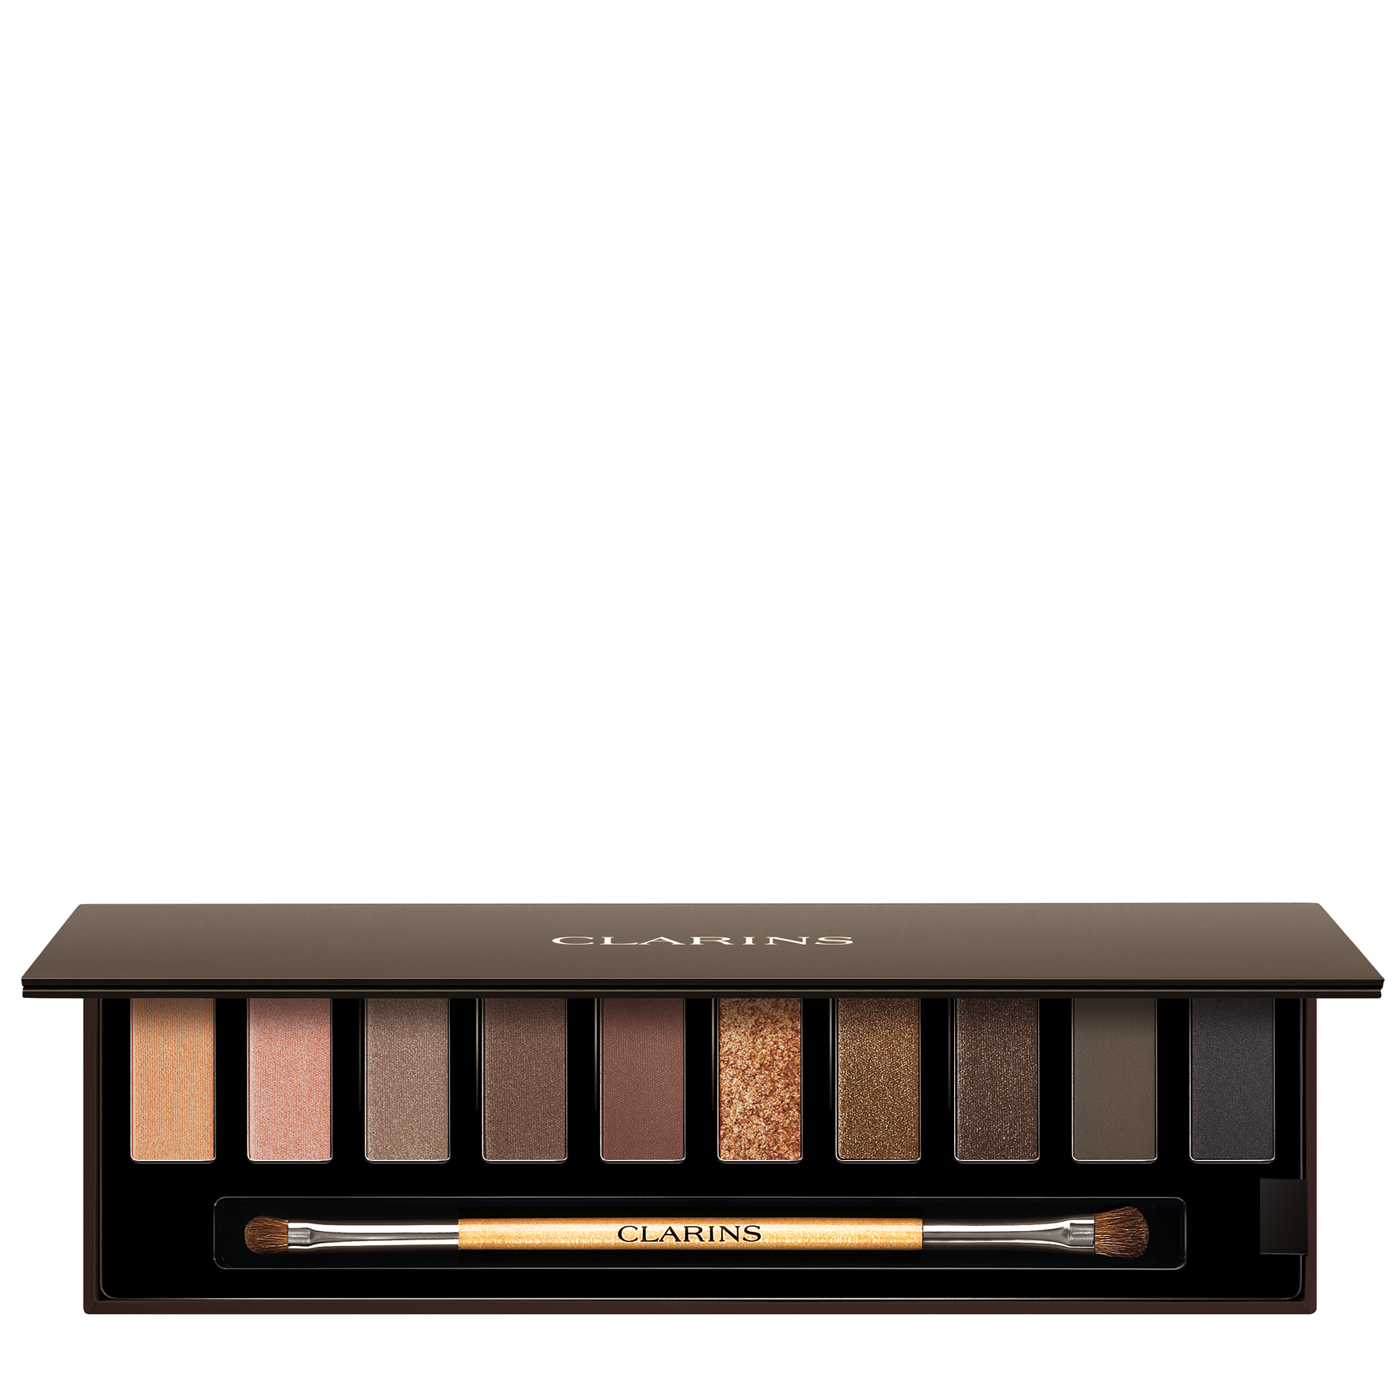 The Essentials Mineral Eye MakeUp Palette One palette